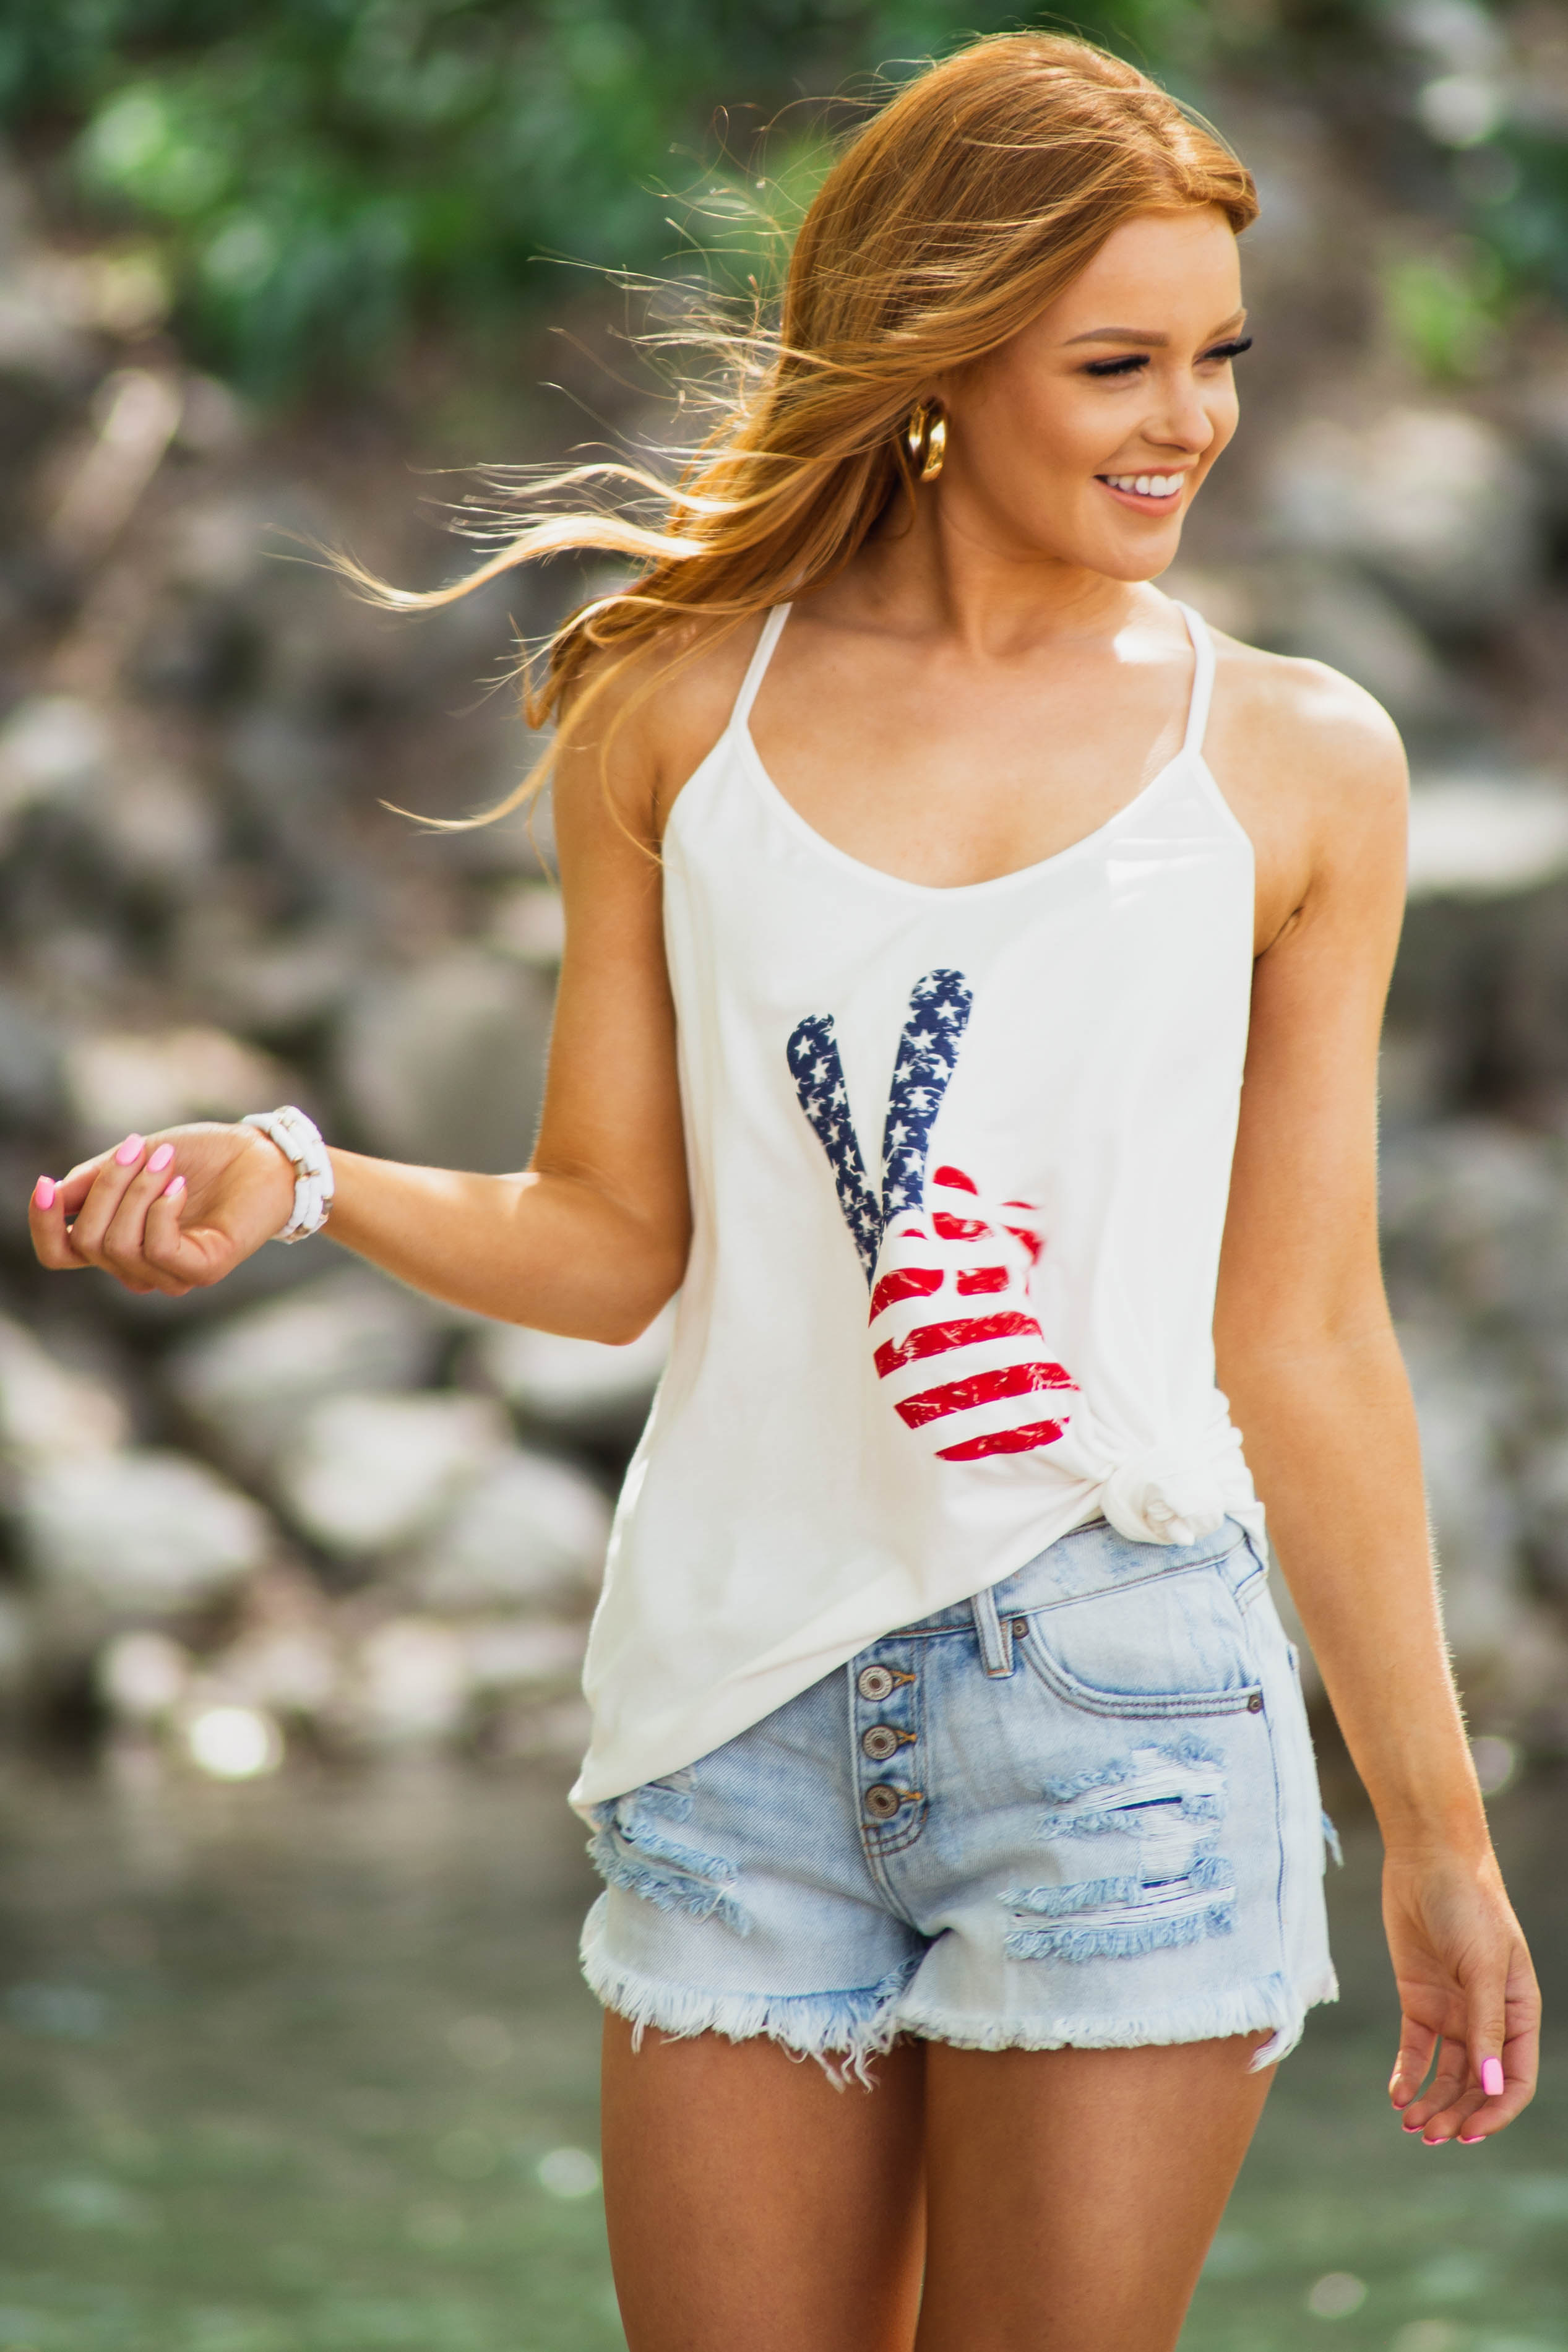 Ivory Racerback Tank Top with Patriotic Peace Sign Graphic